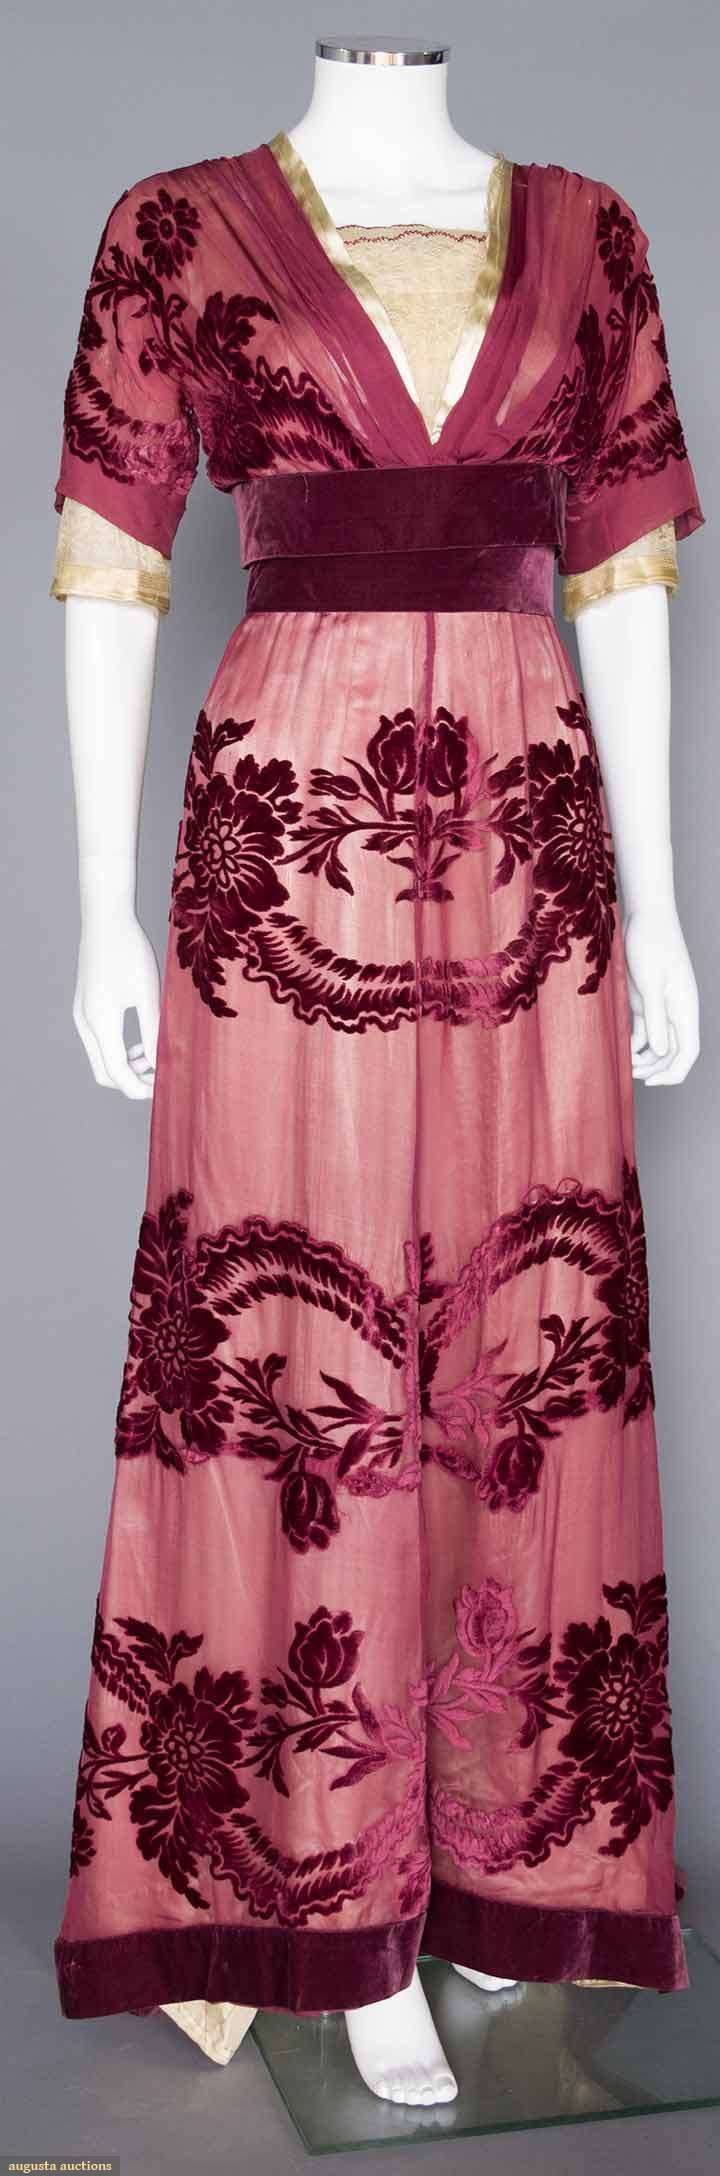 Circa 1908 plum velvet cut to chiffon gown by Charles Worth, Paris. Via Augusta Auctions.